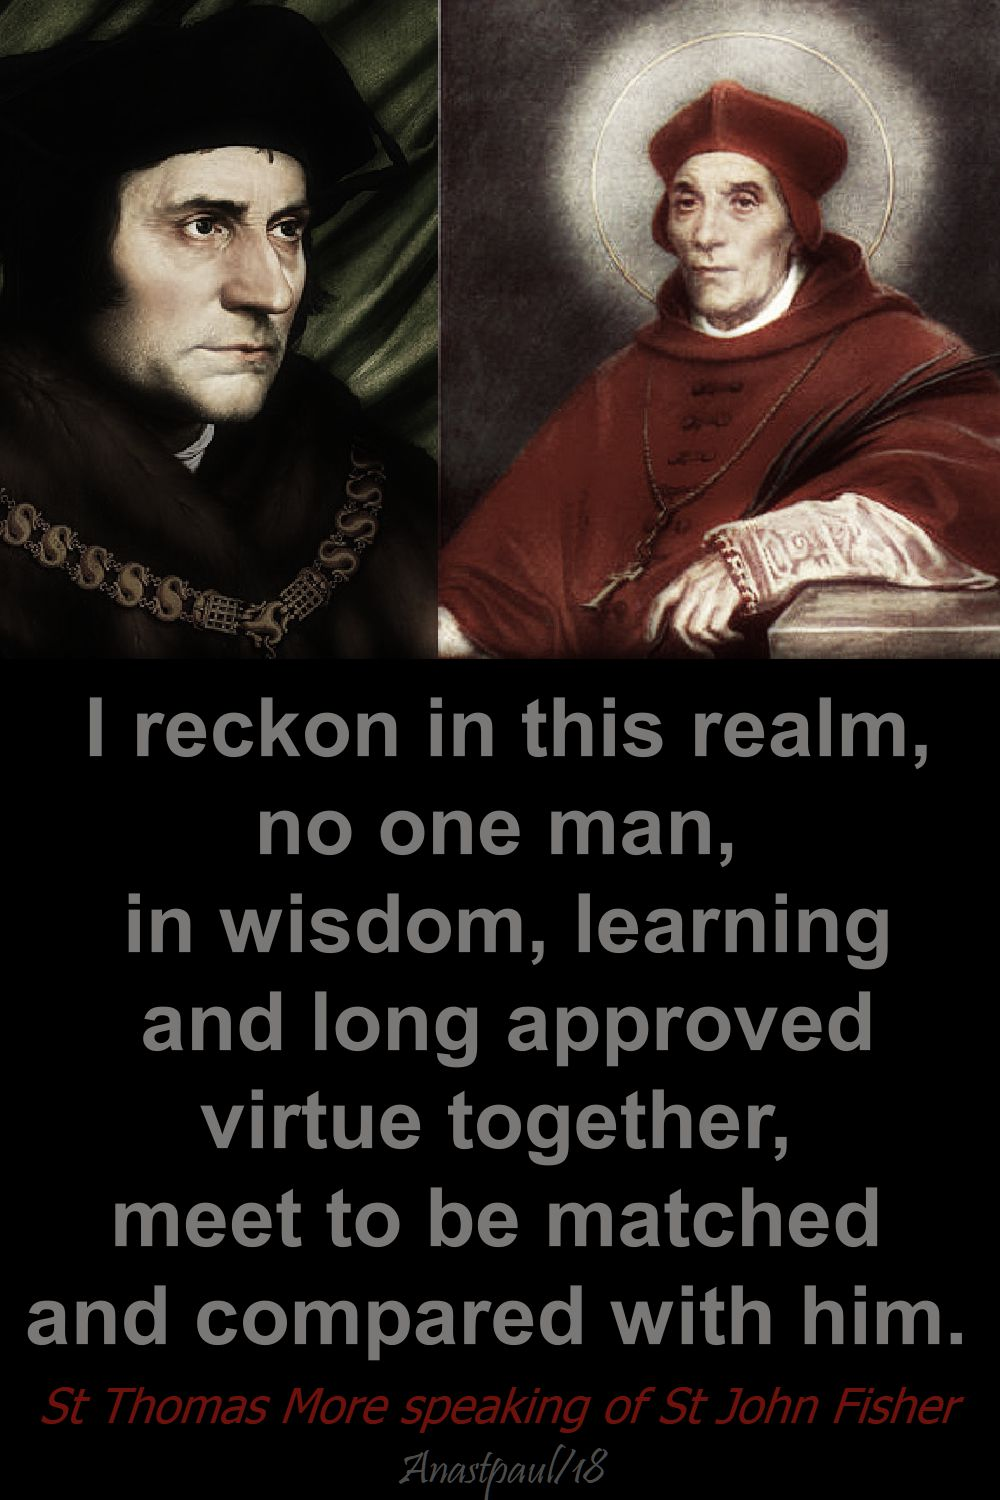 i reckon in this realm - st thomas more speaking of st john fisher - 22 june 2018